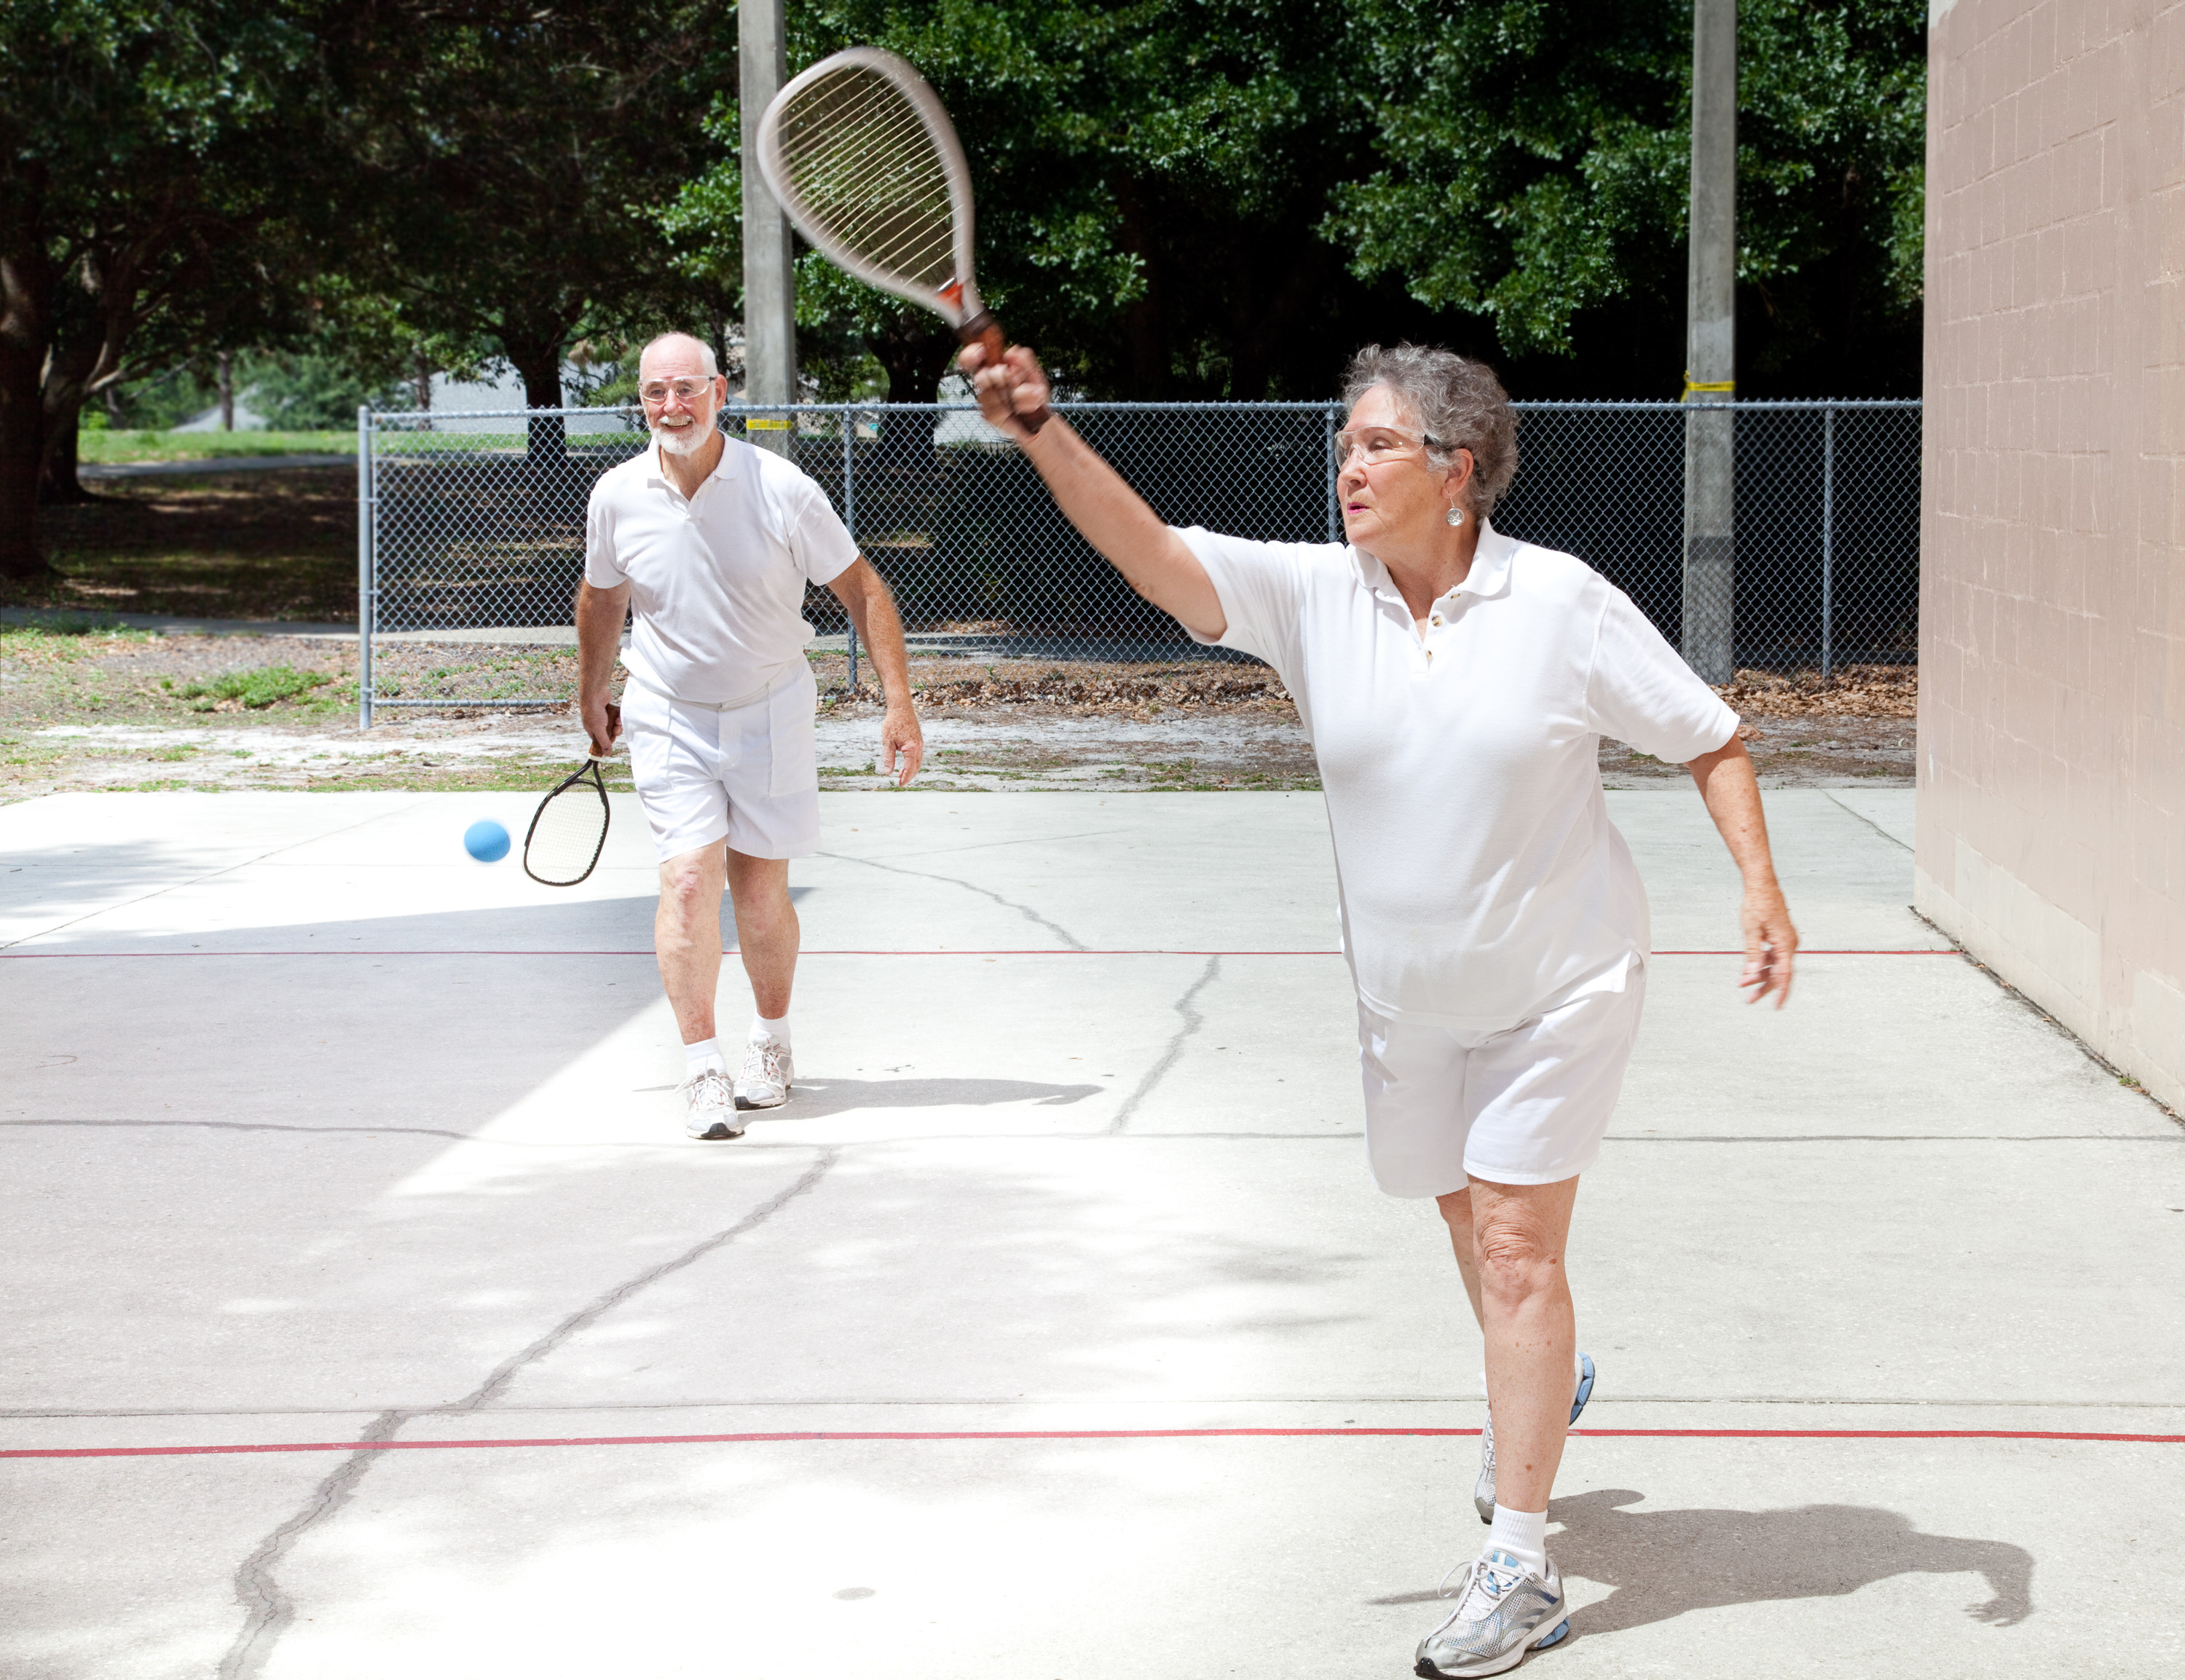 Older adults playing racquetball